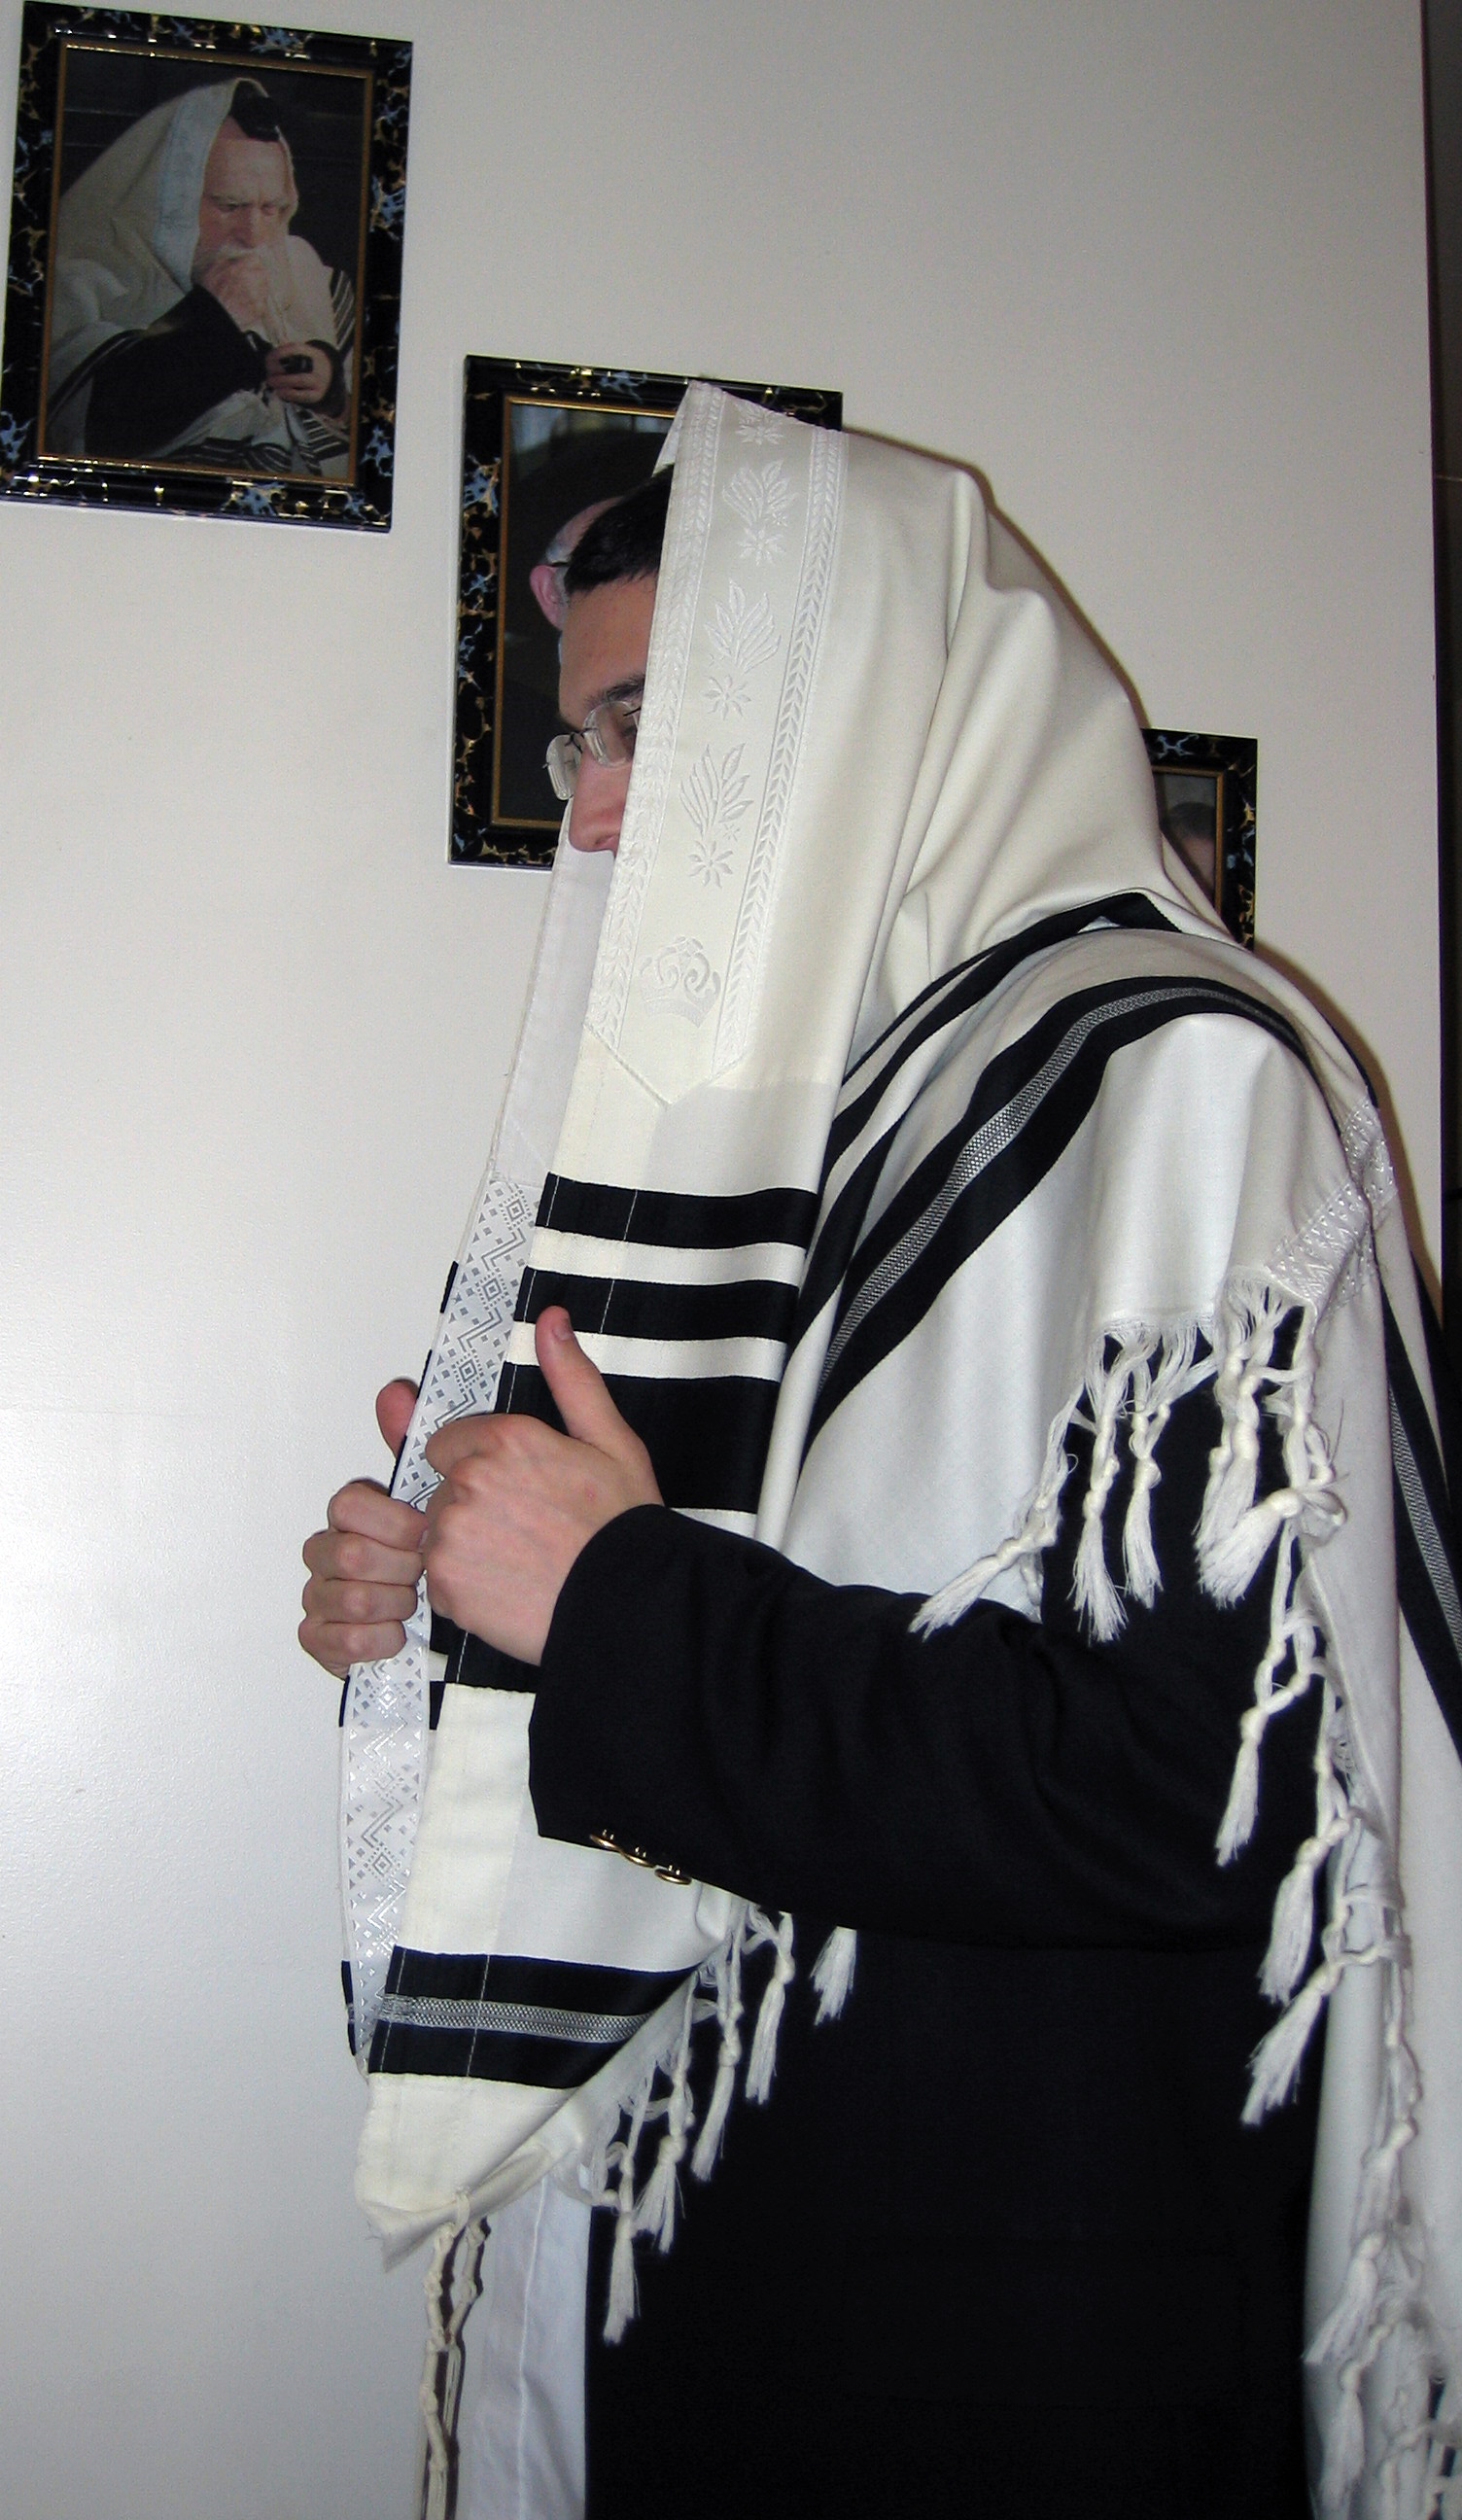 A Tallit as worn during prayer